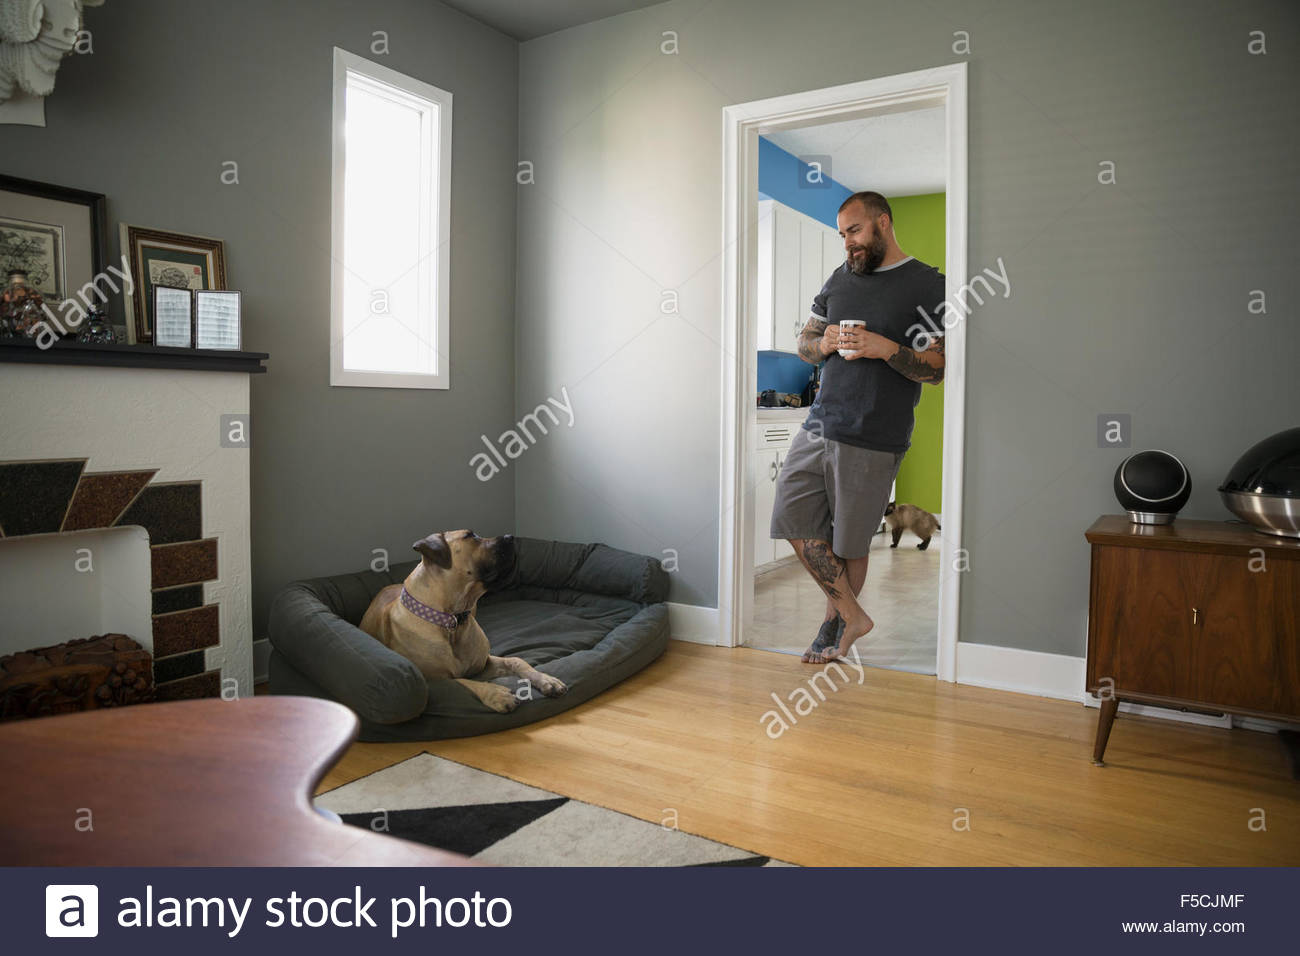 Man with coffee doorway looking down at dog - Stock Image